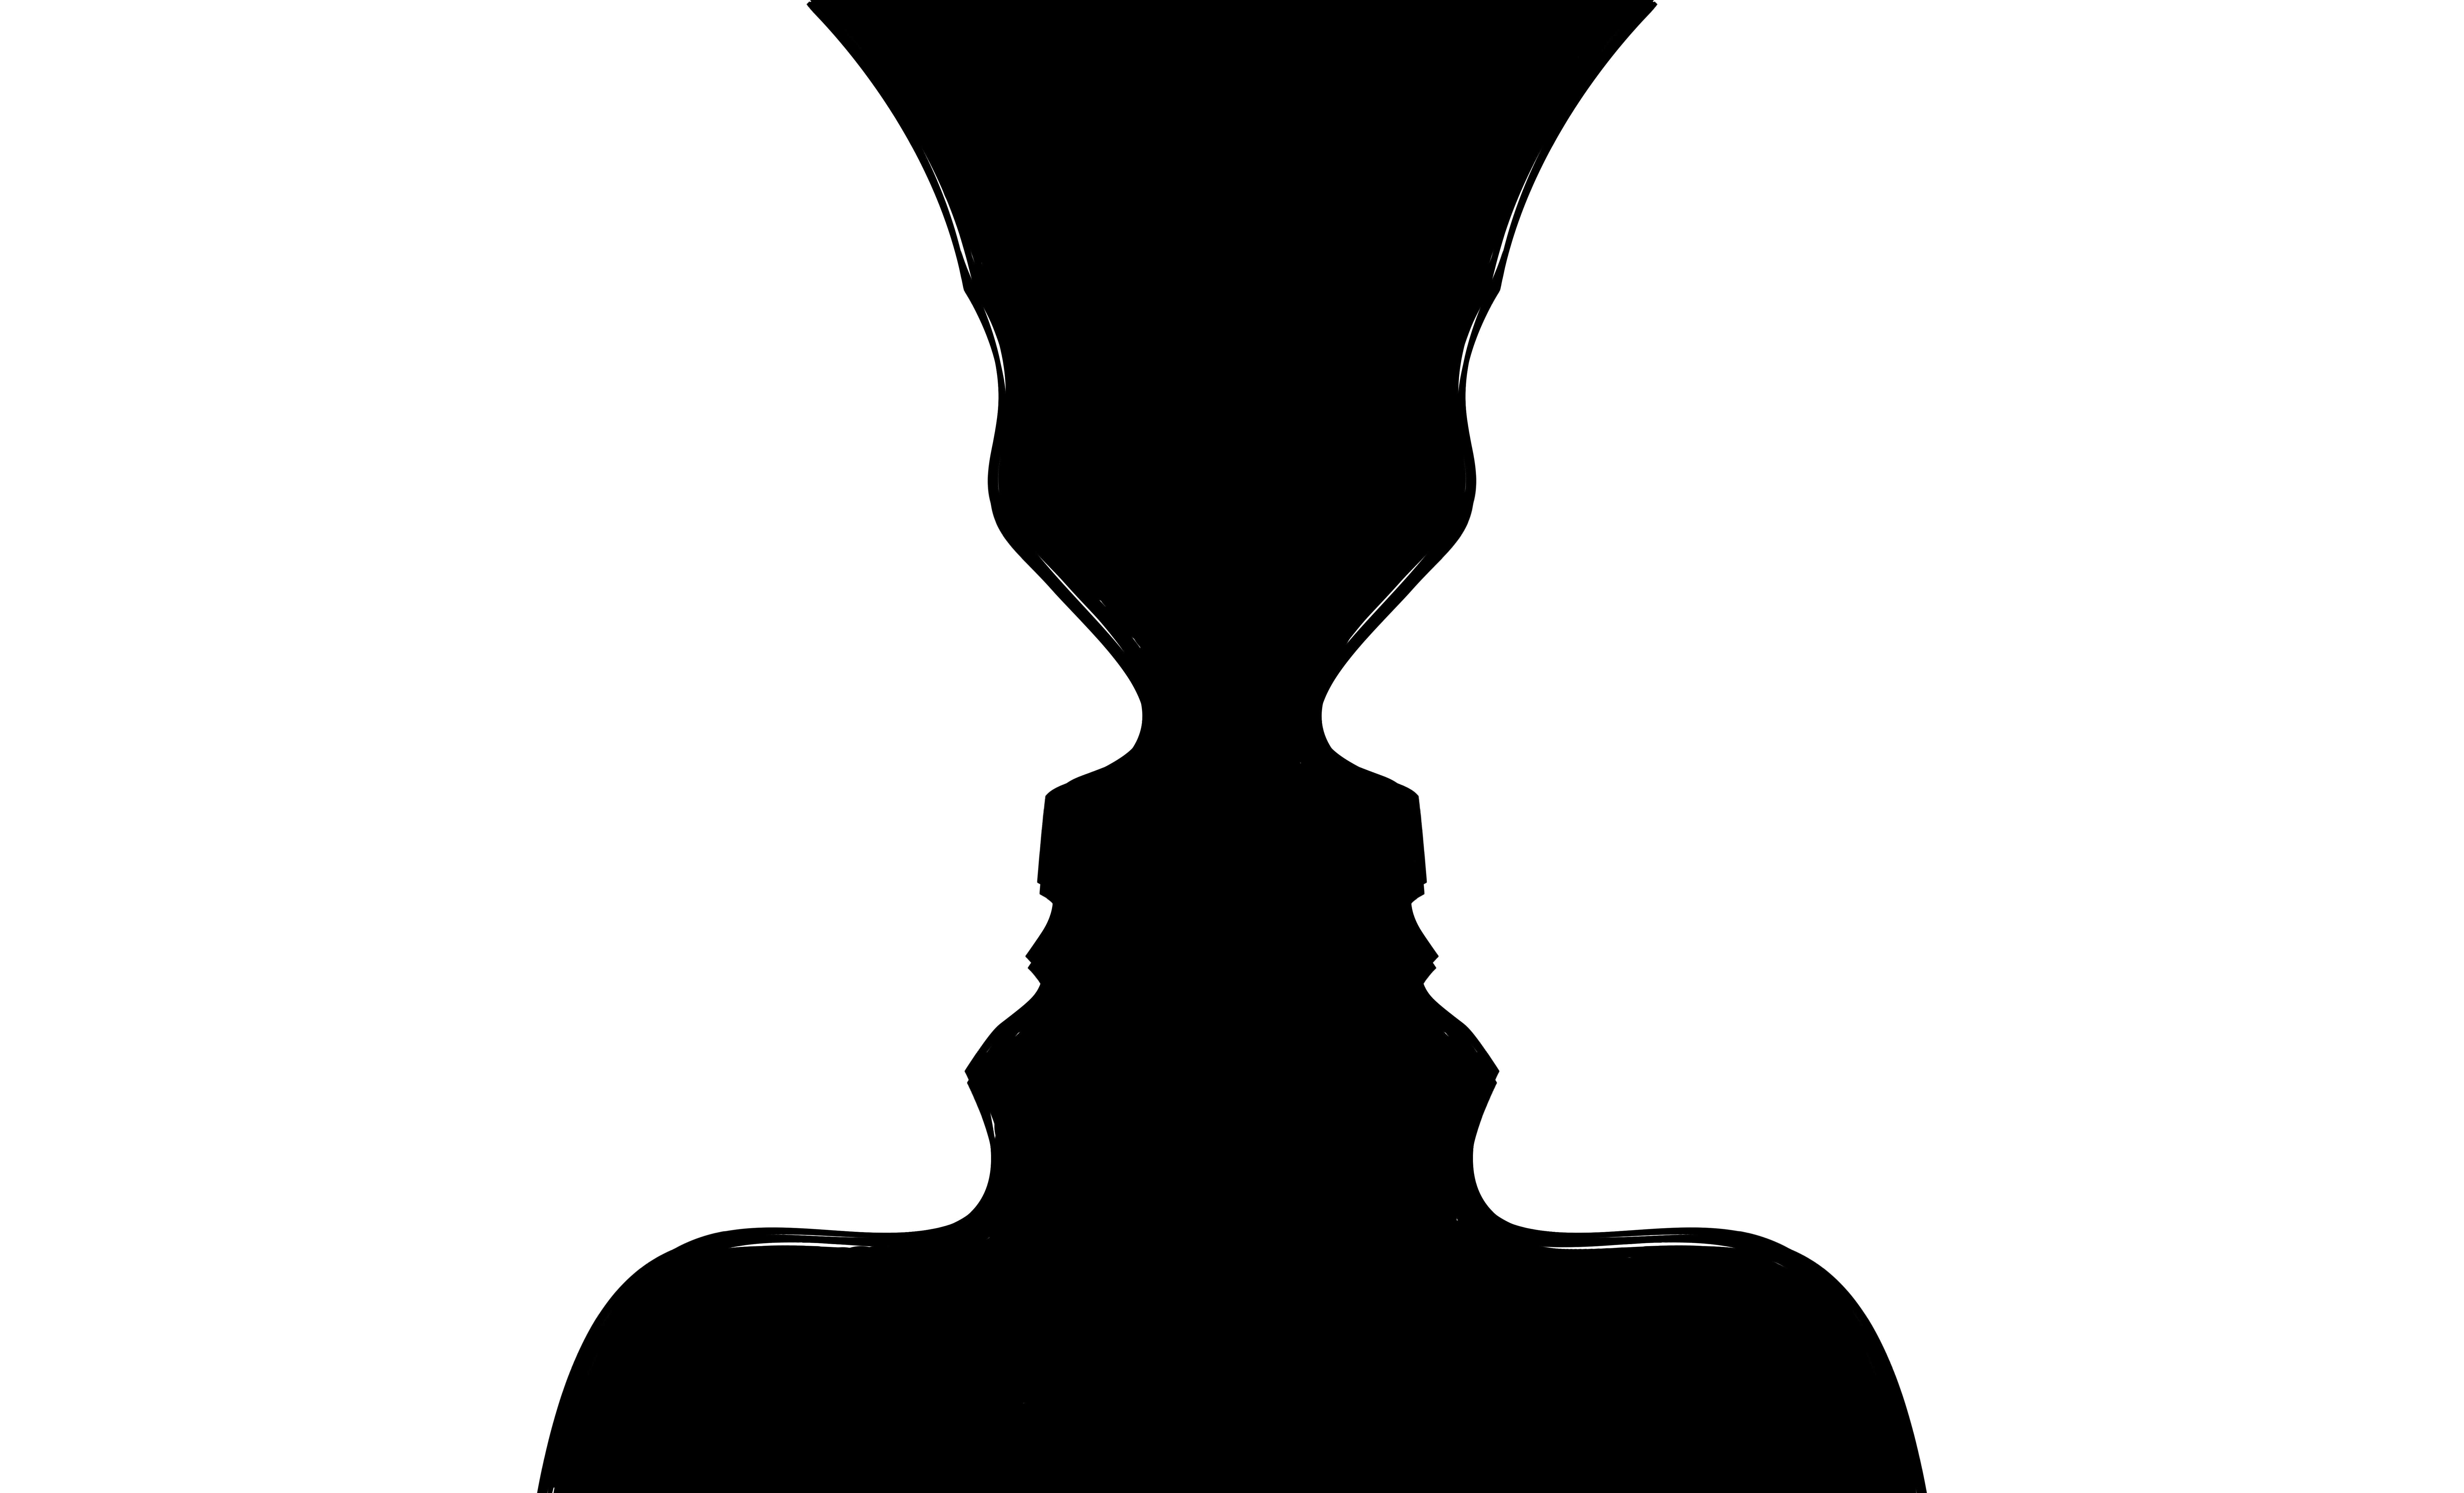 8799x5333 Clipart For Editing A Face And Body Of Human Free Images Hand